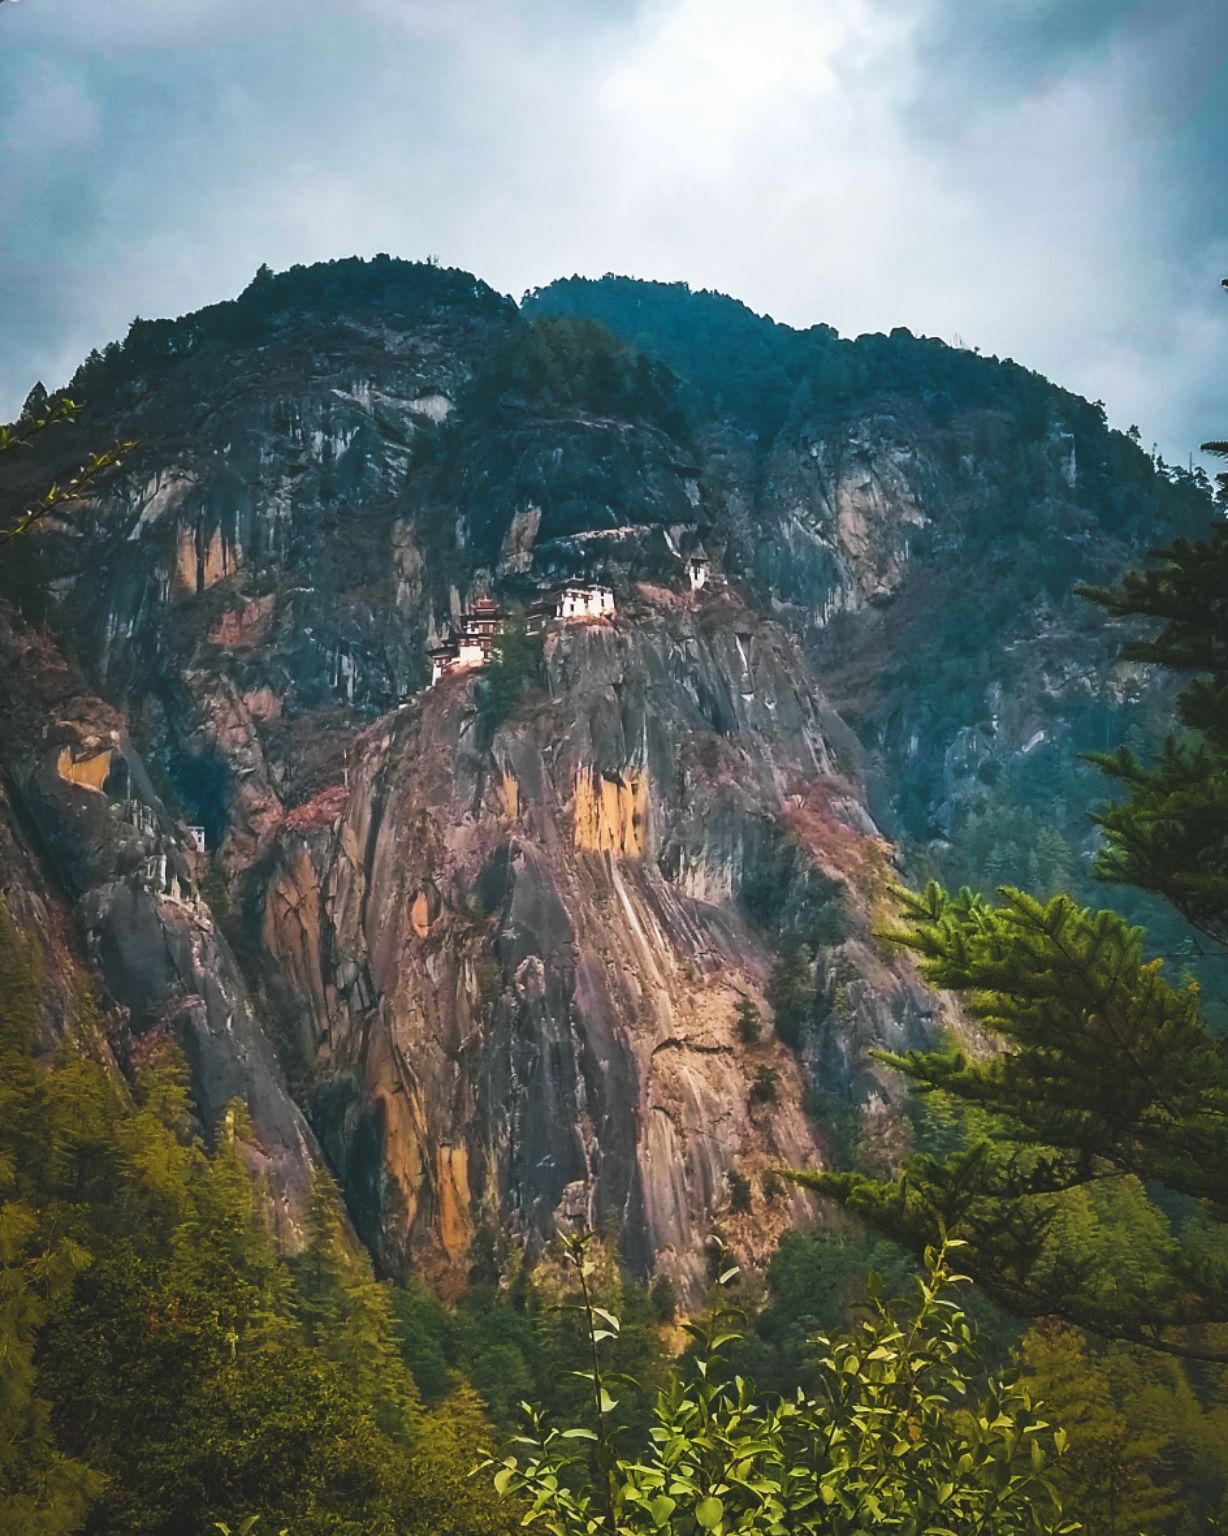 Photo of Tiger's Nest By sourav dash